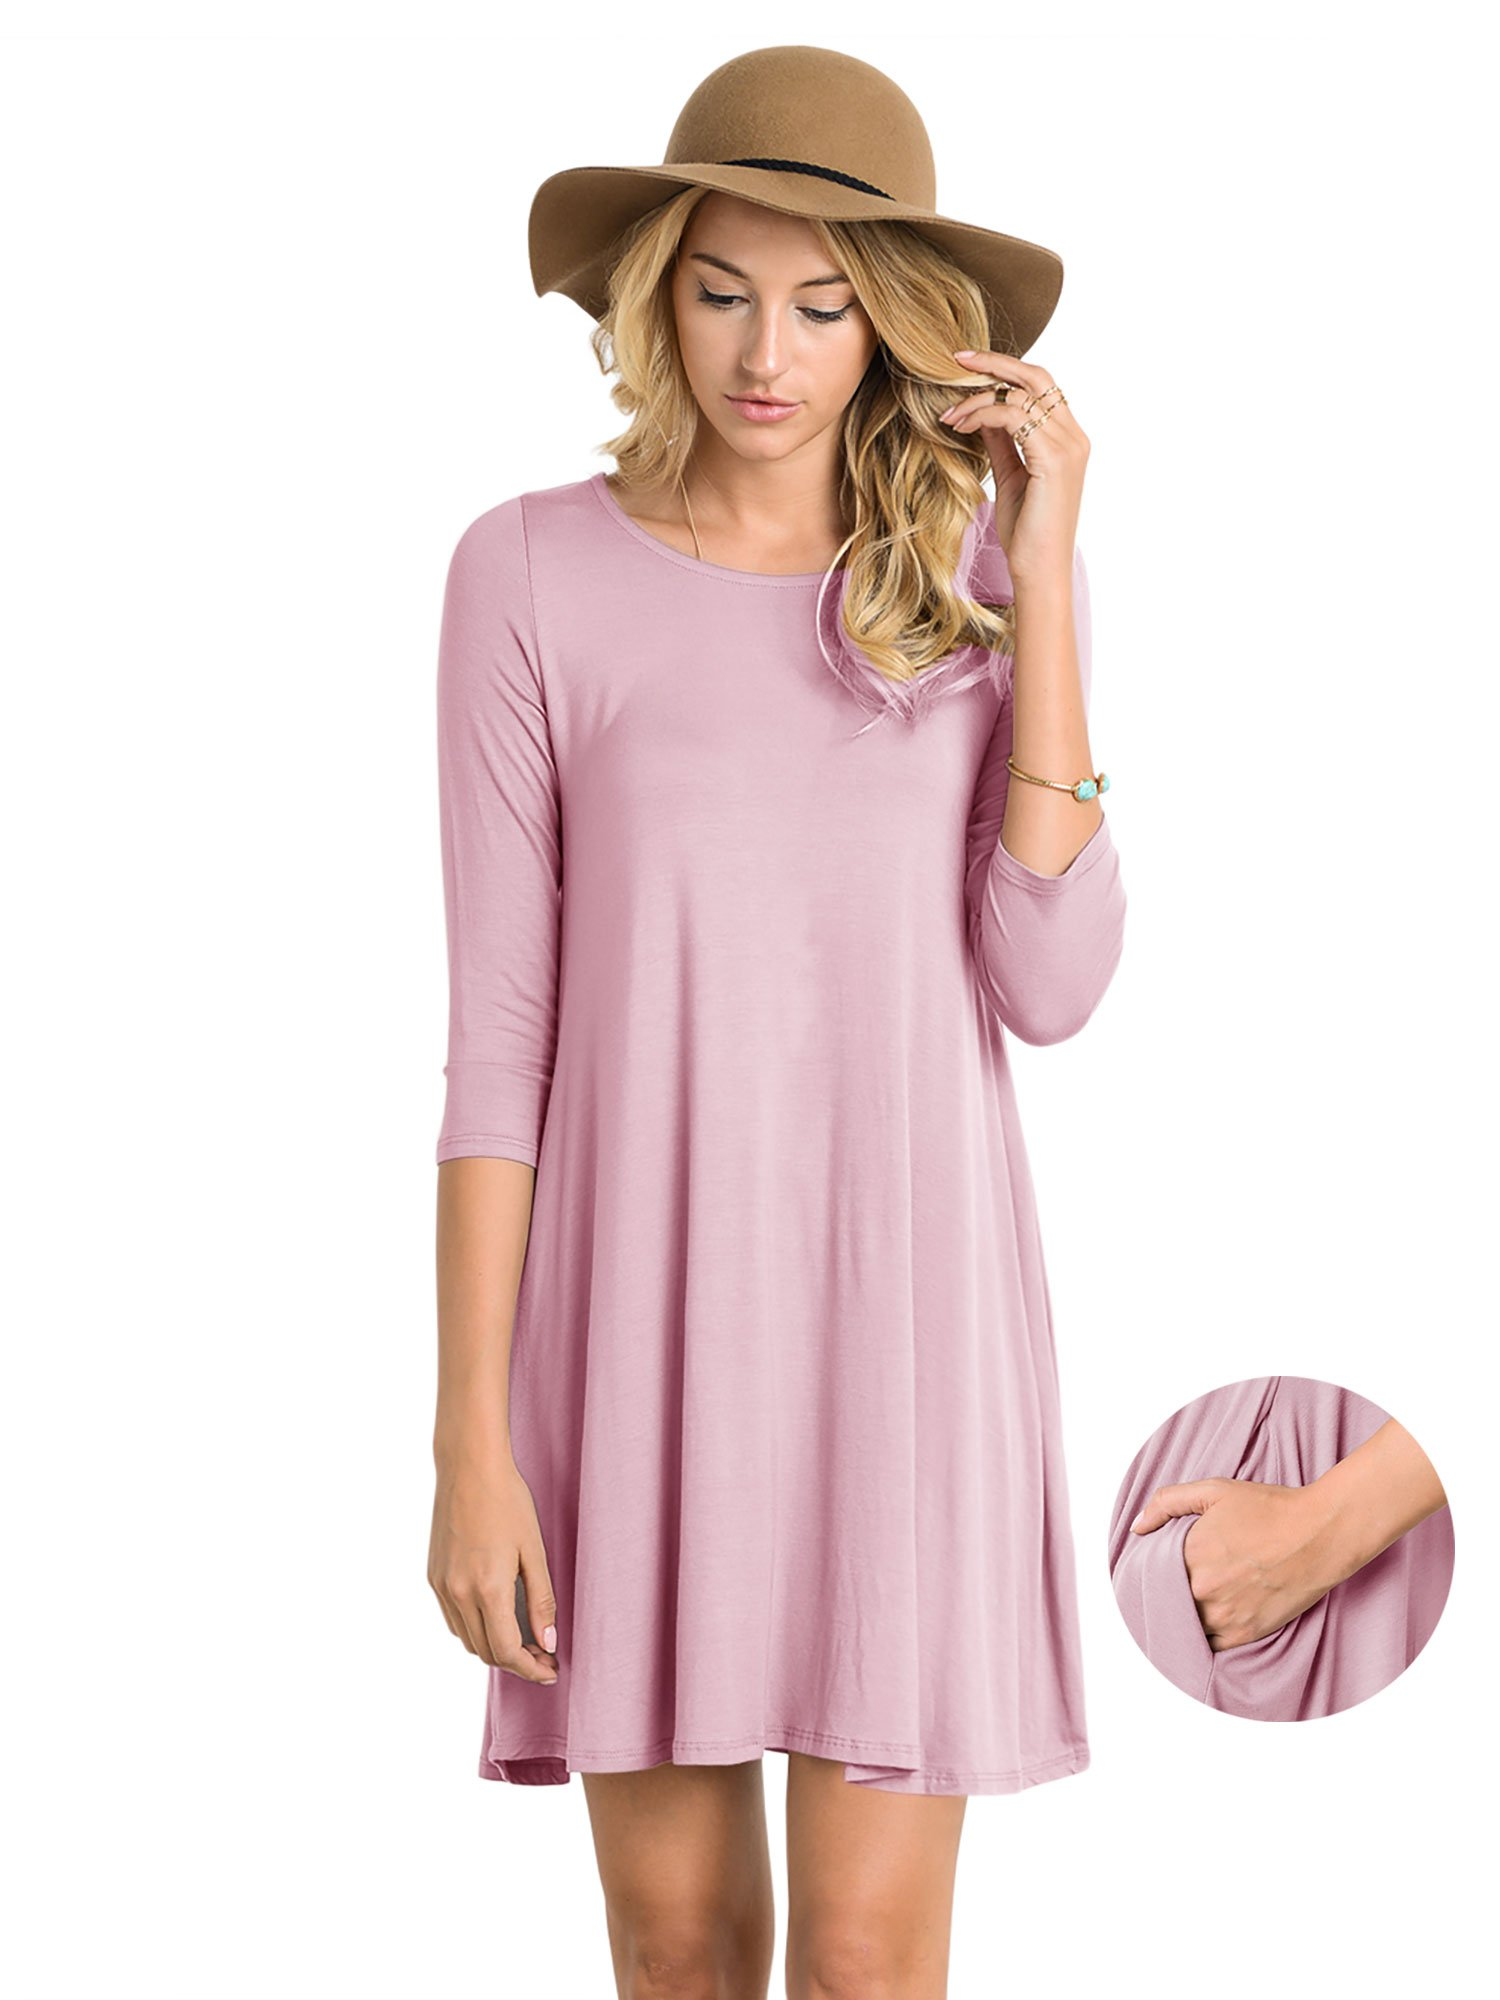 Fashion California FACA Womens Round Neck 3/4 Sleeve Tunic Dress with Side Pocket (